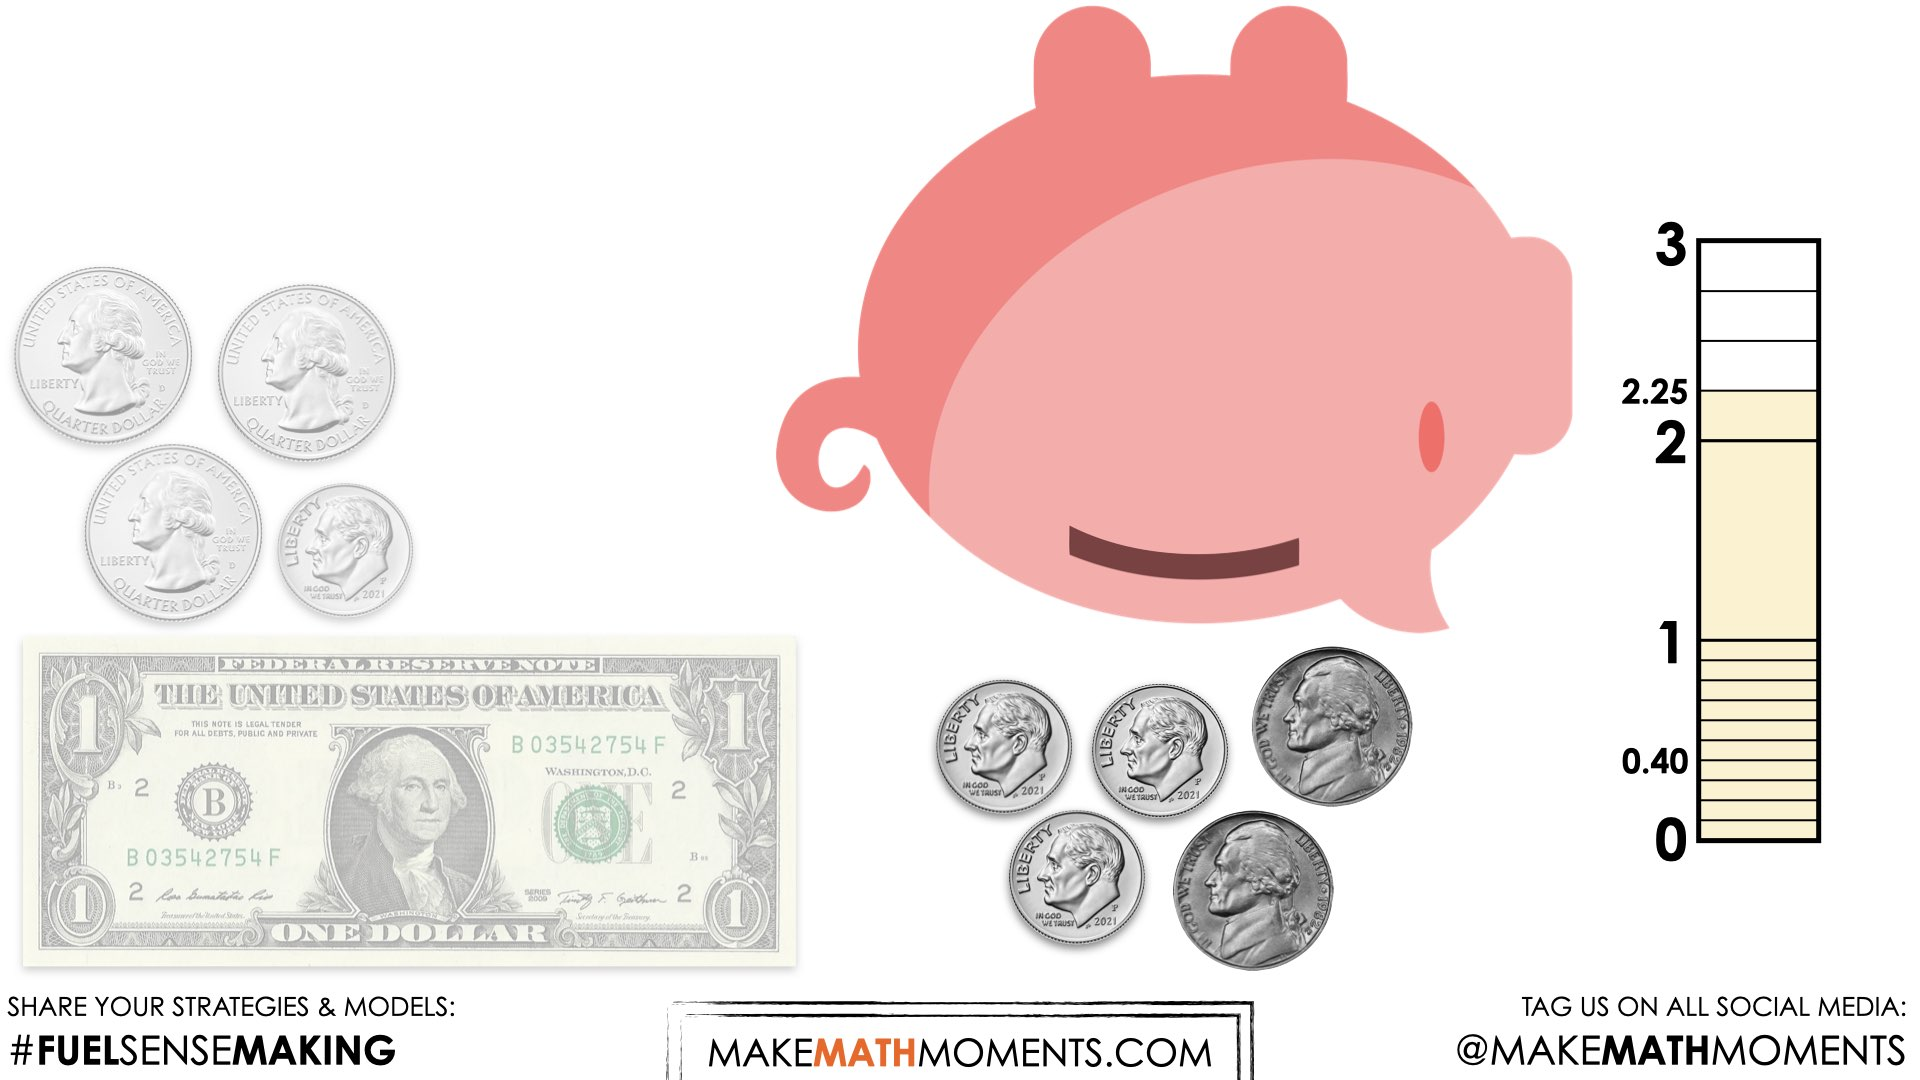 Piggy Bank Revisited [Day 1] - How Much Was Removed - 10 - NEXT MOVES - Reveal US Coins Image.001